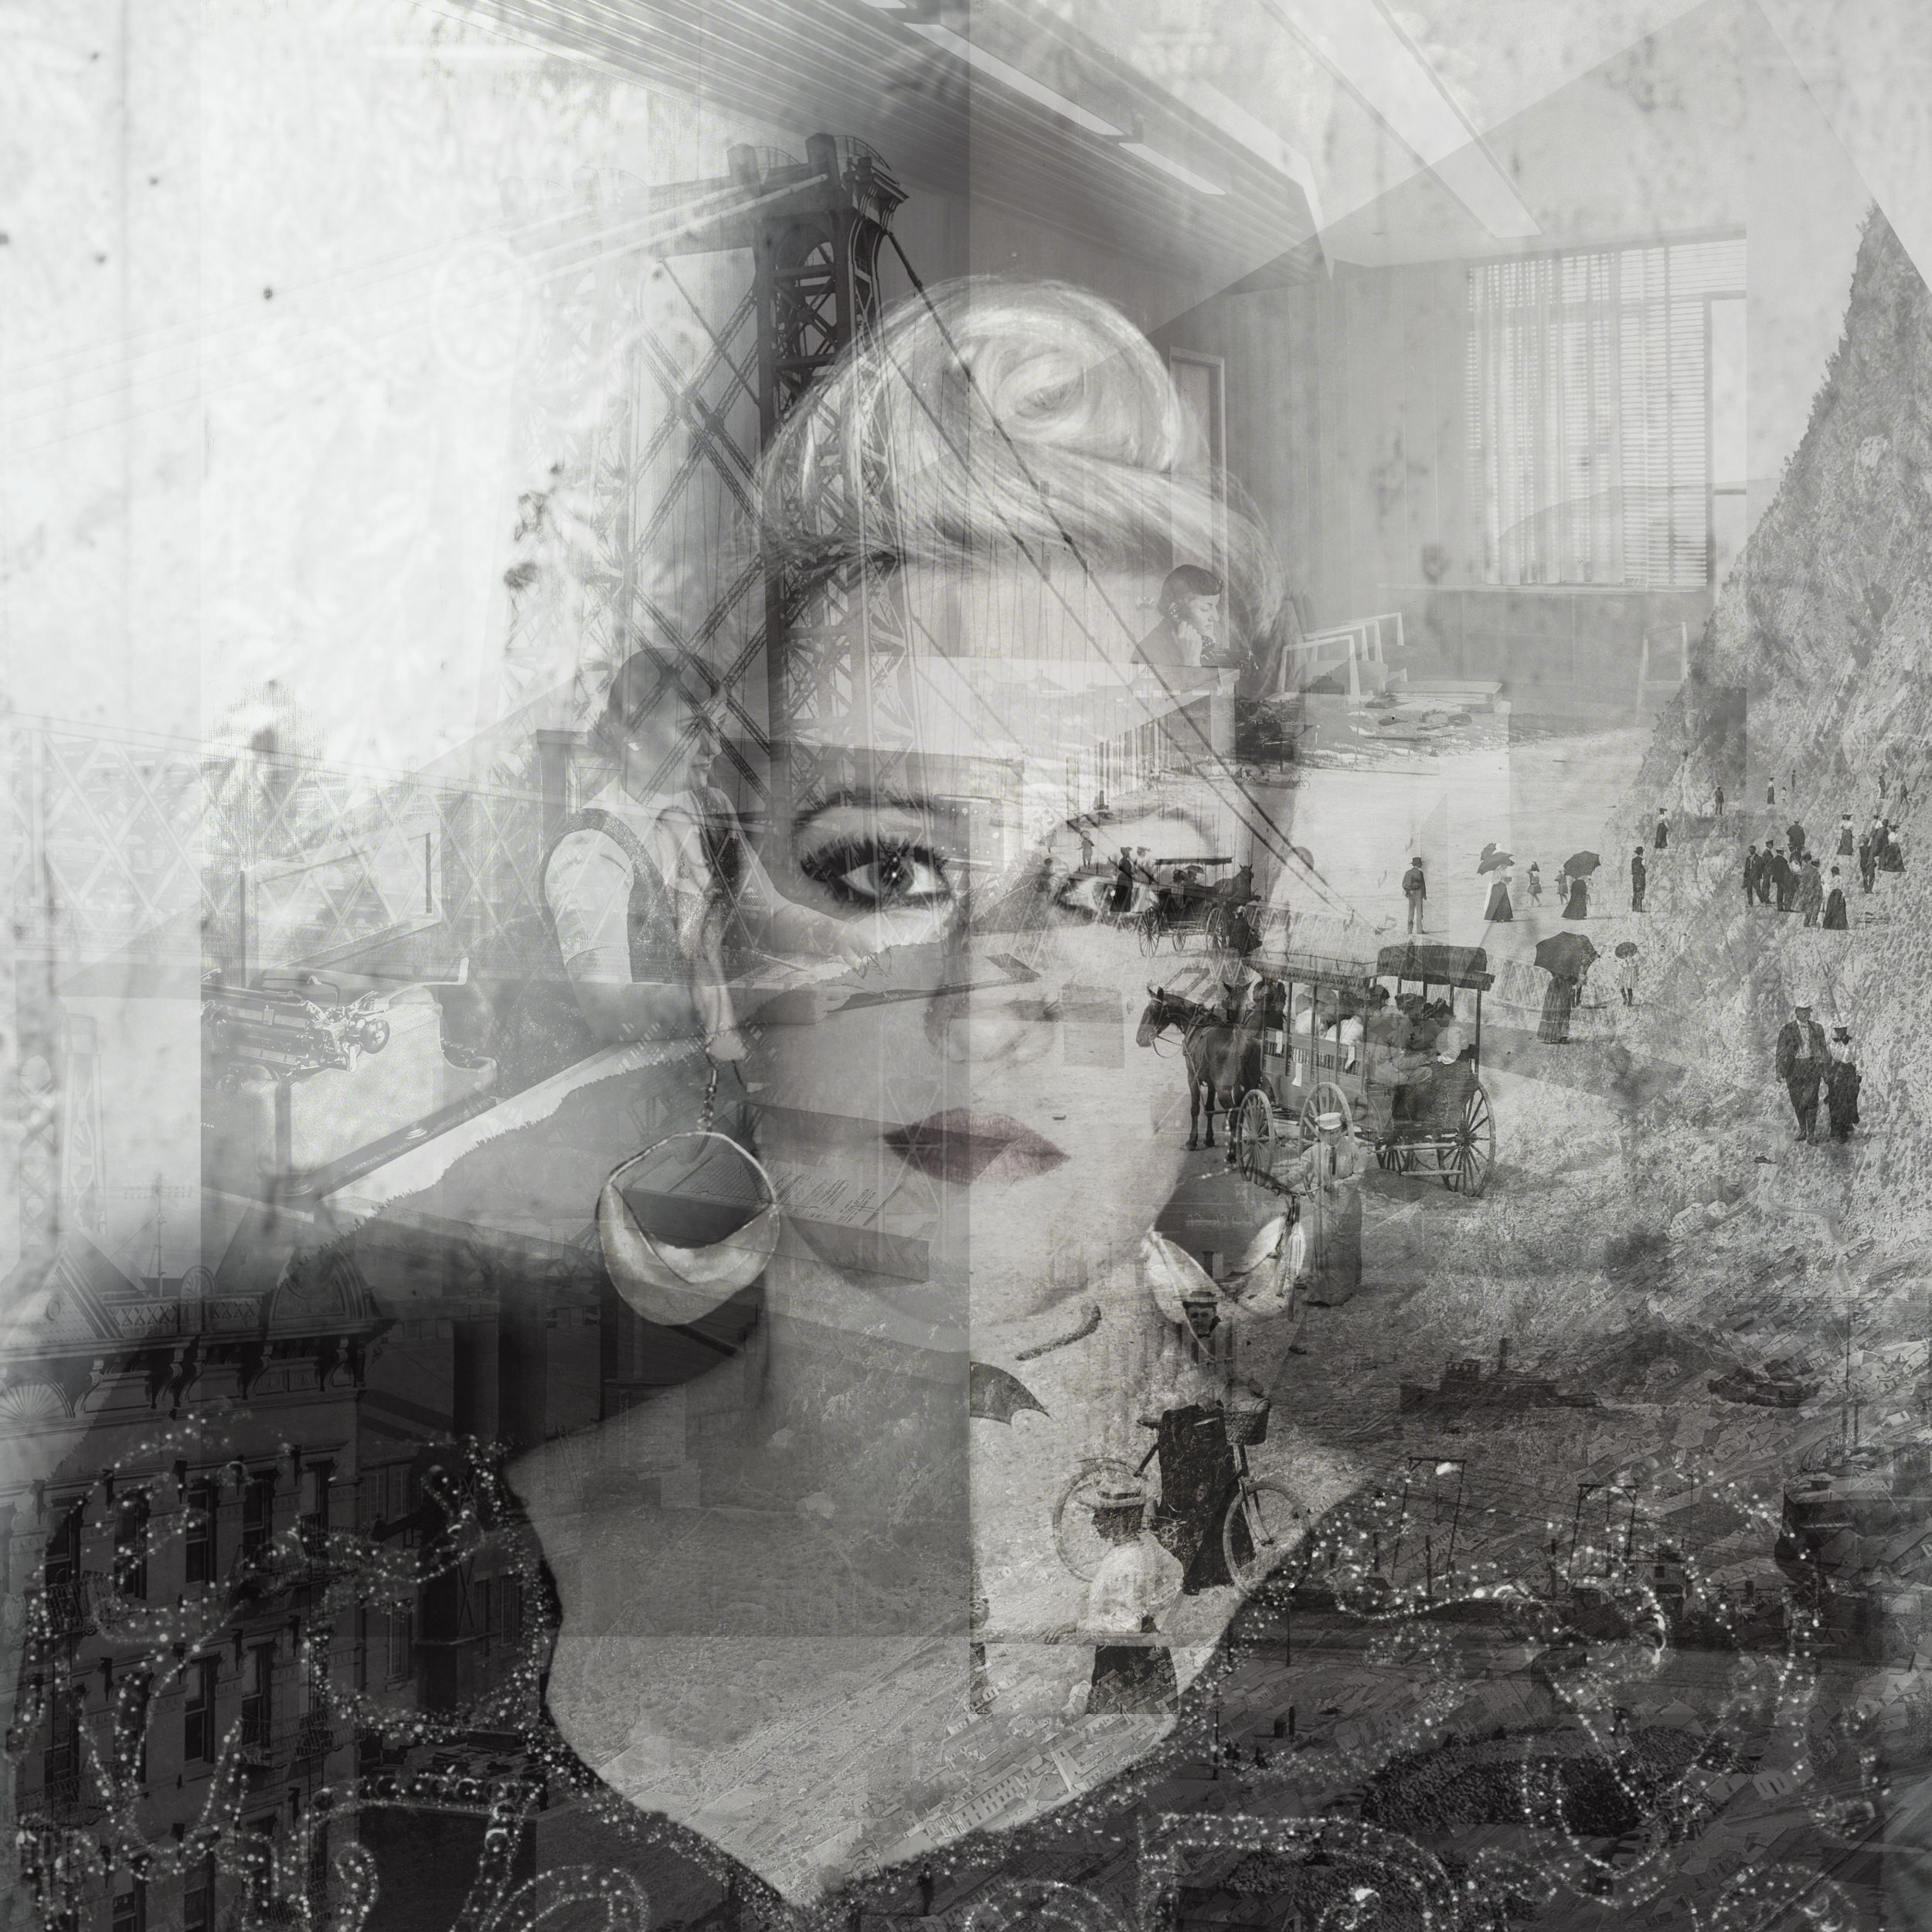 Alice Russell - Hurry On Now (Grant Lazlo remix) free download here: https://grantlazlo.bandcamp.com/track/alice-russell-hurry-on-now-grant-lazlo-remix